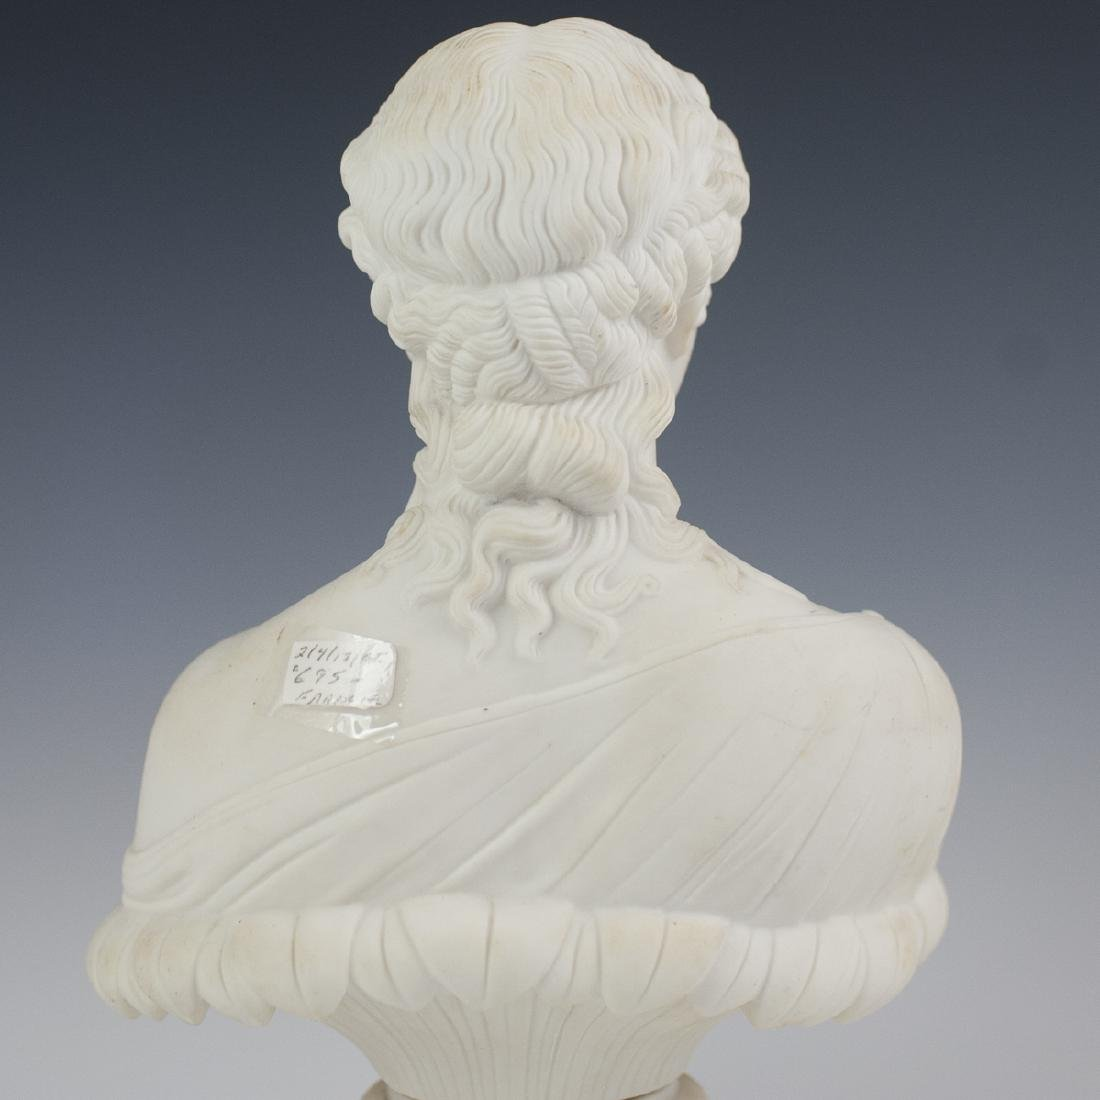 Antique French Parian Ware Bust - 3